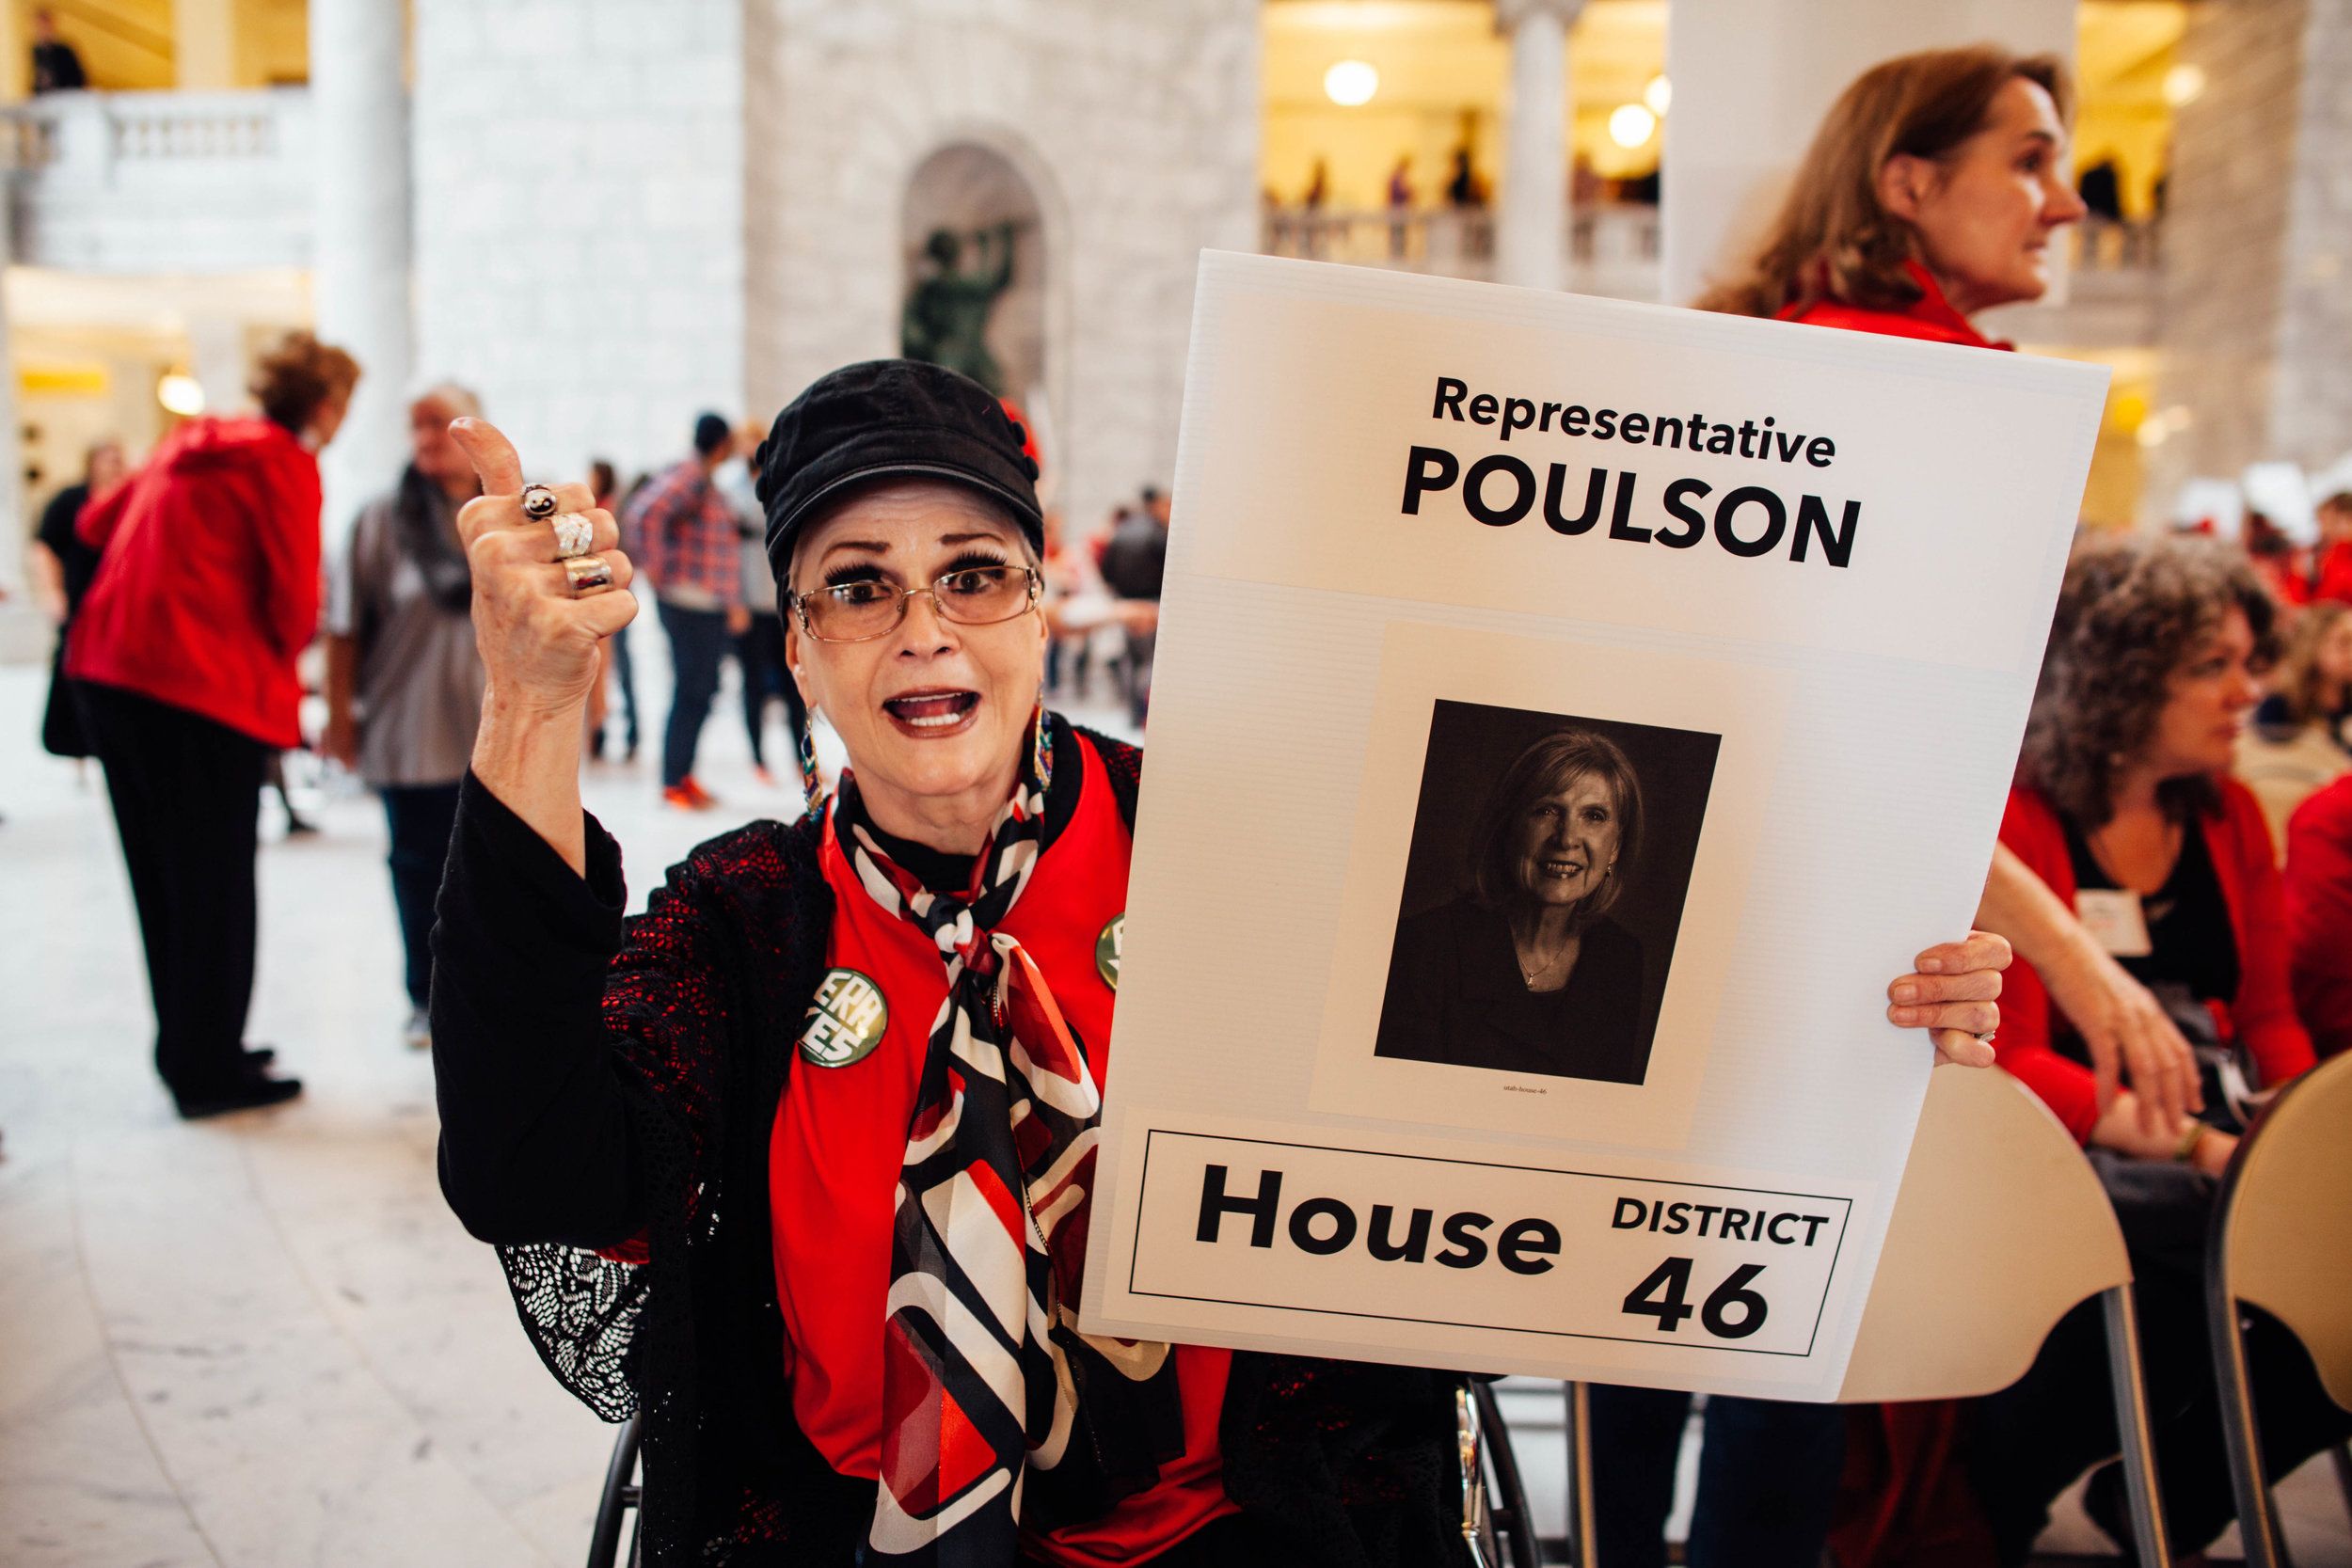 Sharon Griffiths, from Cottonwood Heights, said it is great to see Utahans of all ages reinvigorated for the advancement of women's rights.